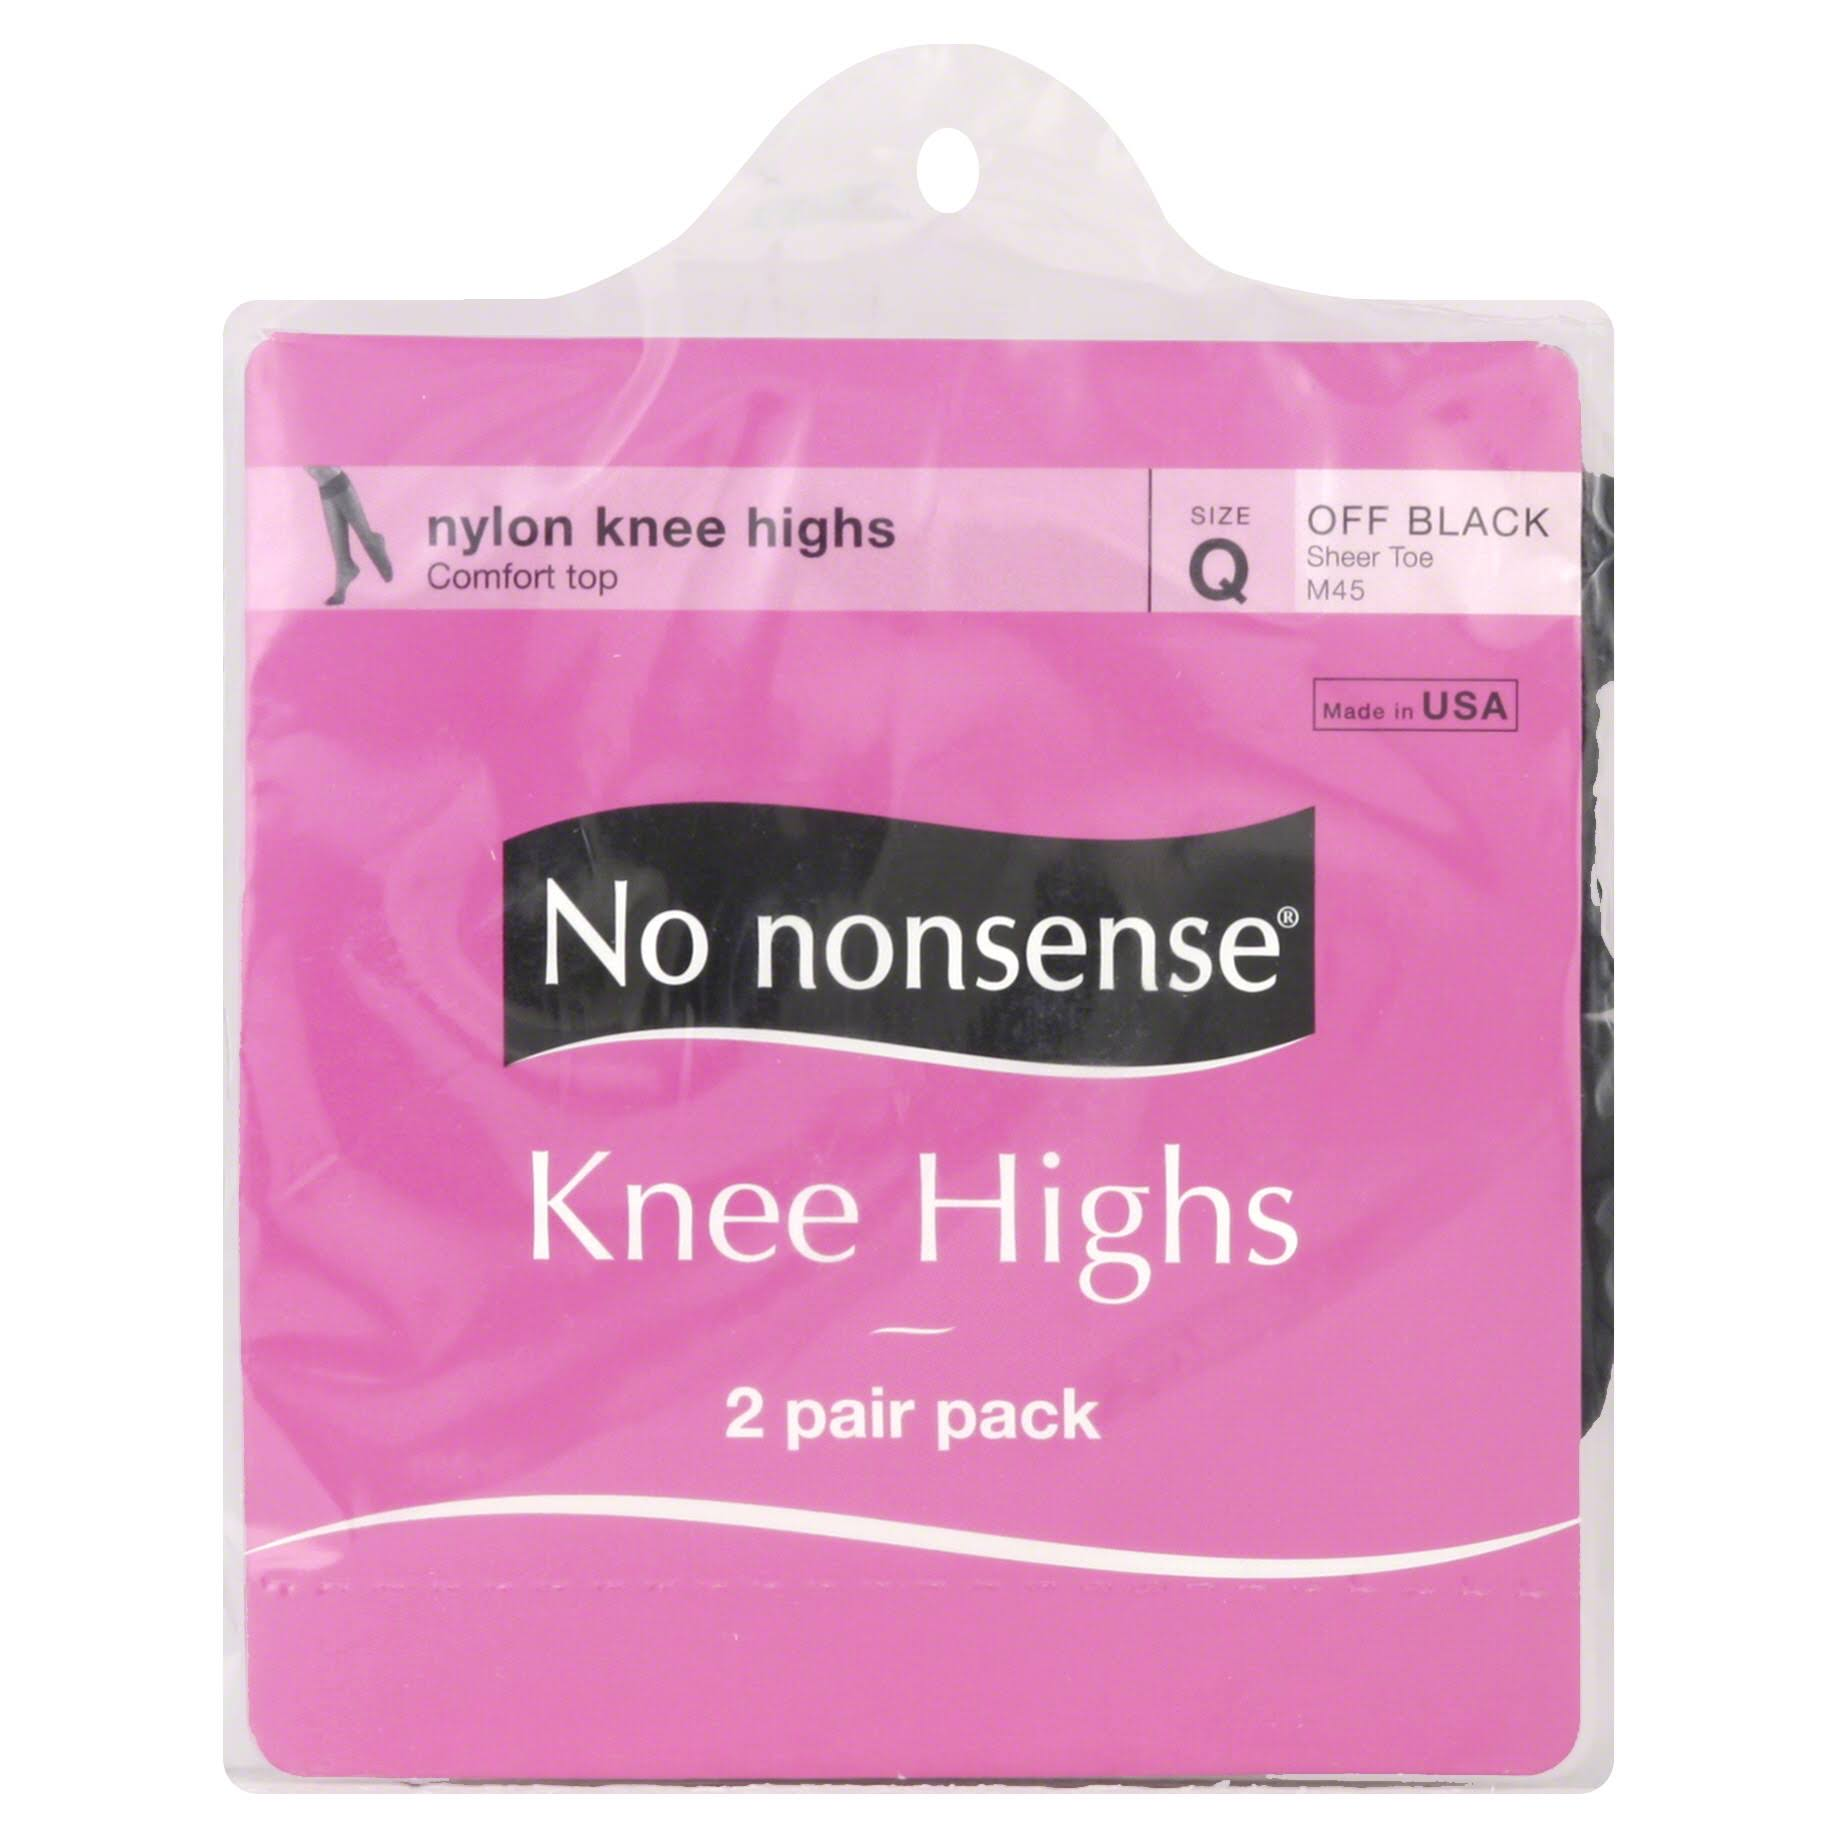 No Nonsense Knee Highs - Off Black, 2 Pack